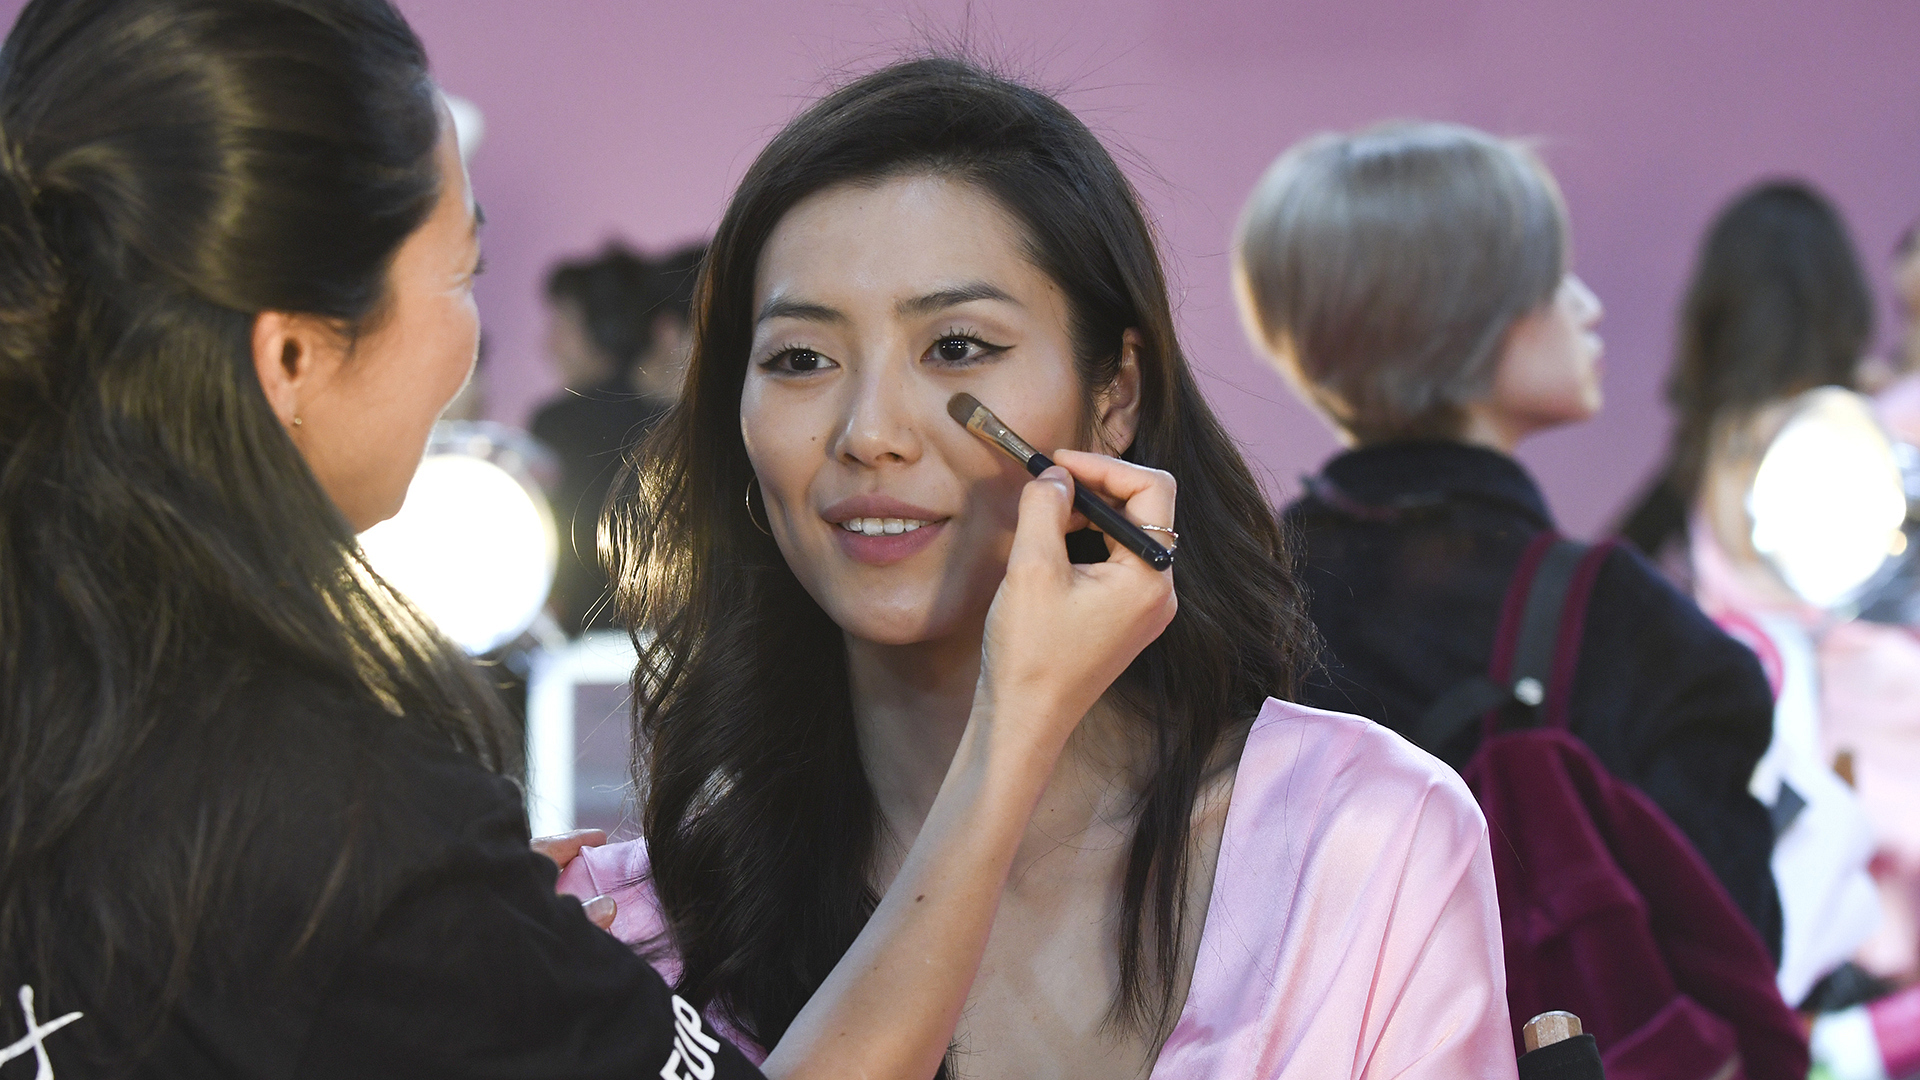 Liu Wen gets some last minute touch-ups.